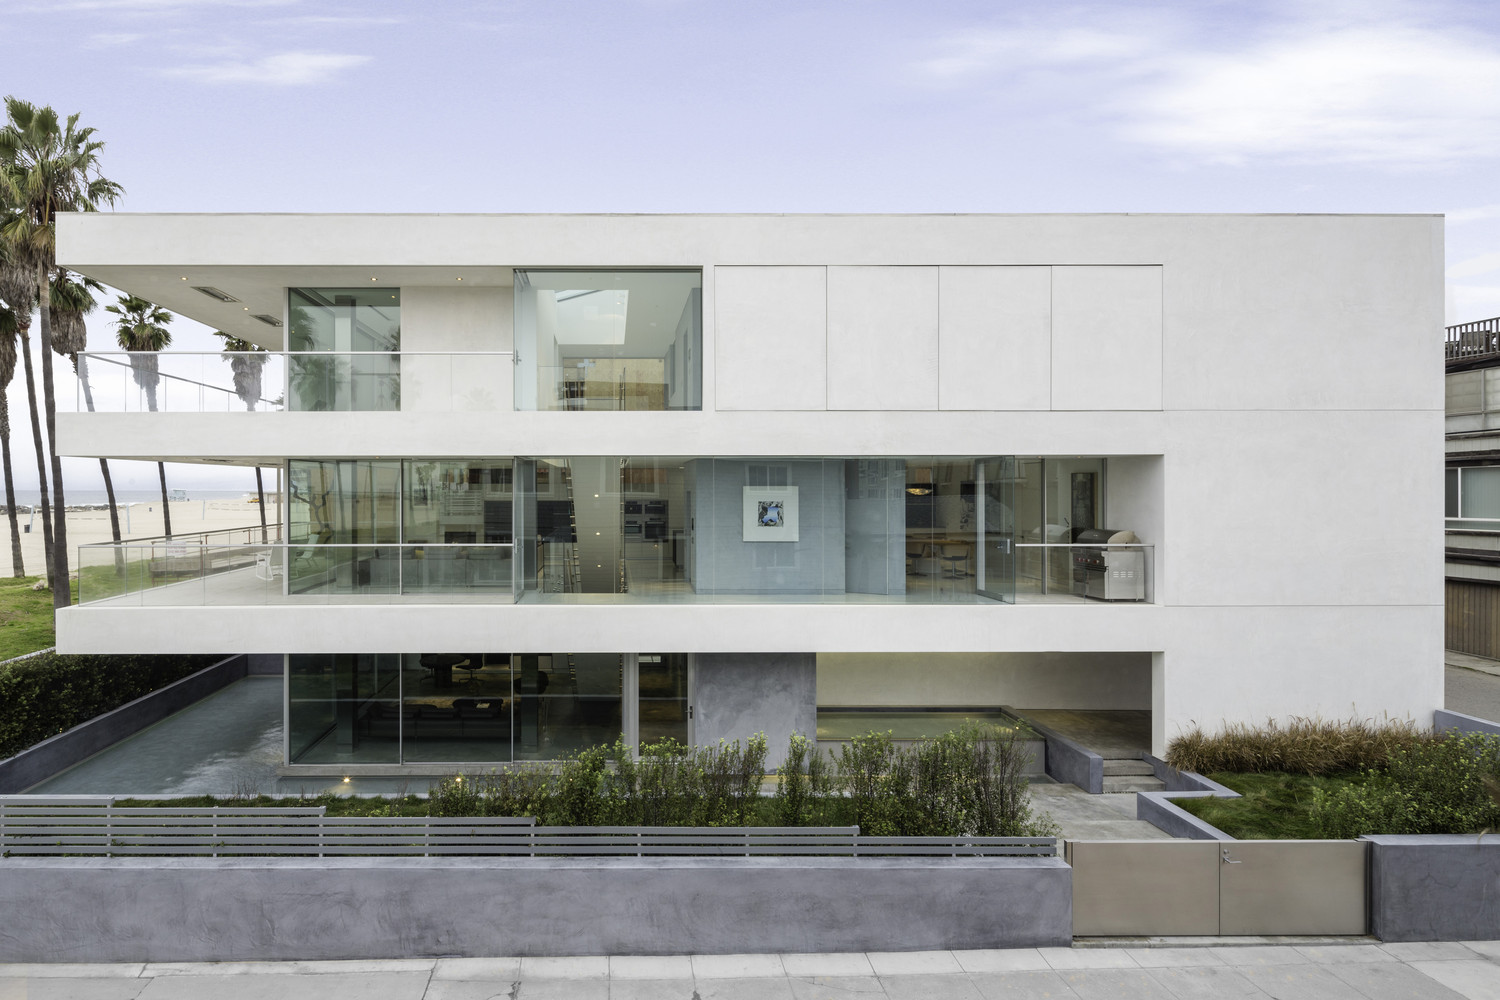 c4358ed3 Gallery of Flip Flop House / Dan Brunn Architecture - 1